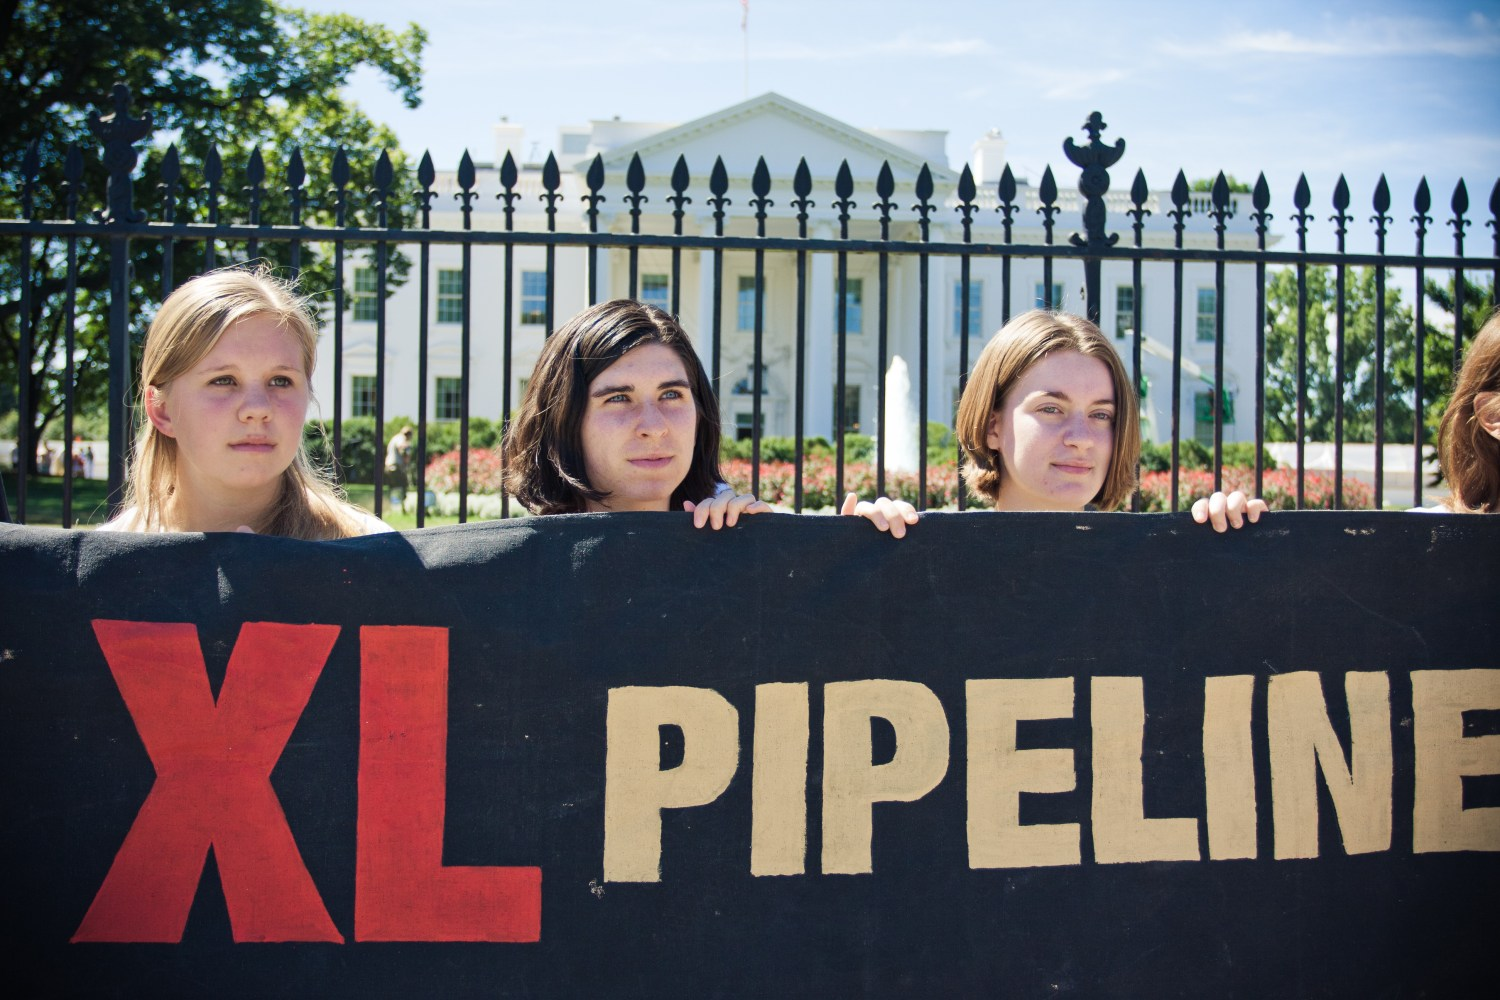 The Obama administration denied TransCanada a permit to build the Keystone XL pipeline in 2015 following big and active demonstrations, including this one at the White House. Photo courtesy of Creative Commons